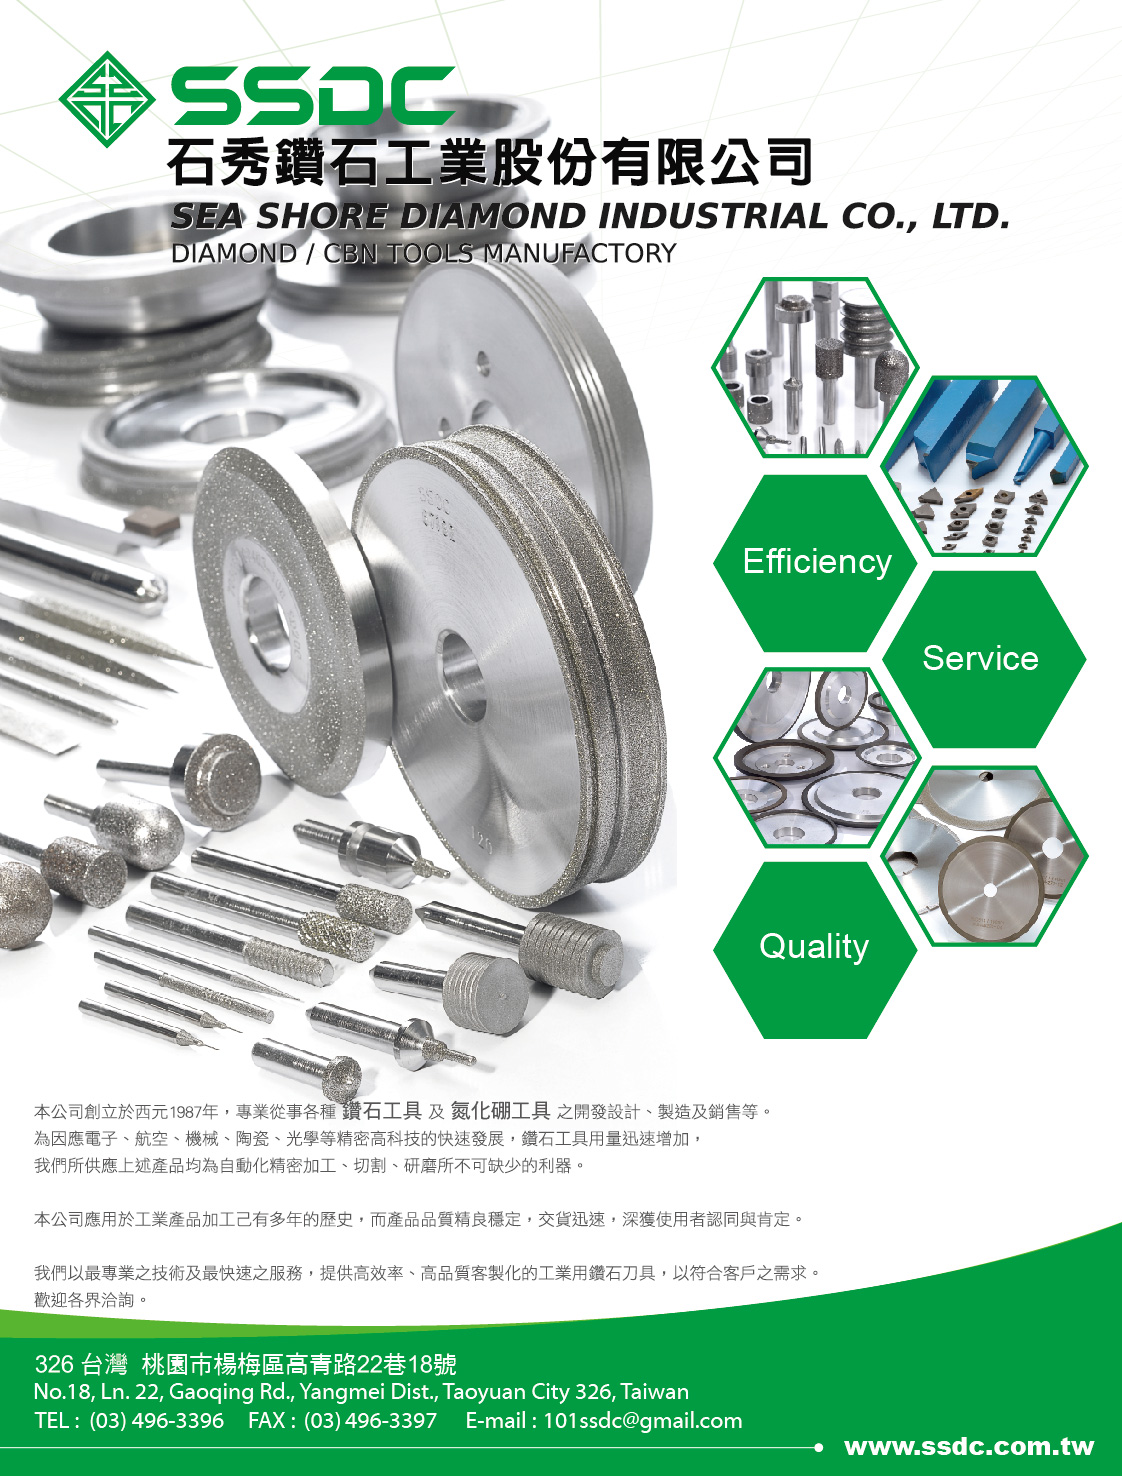 SEA SHORE DIAMOND INDUSTRIAL CO., LTD.